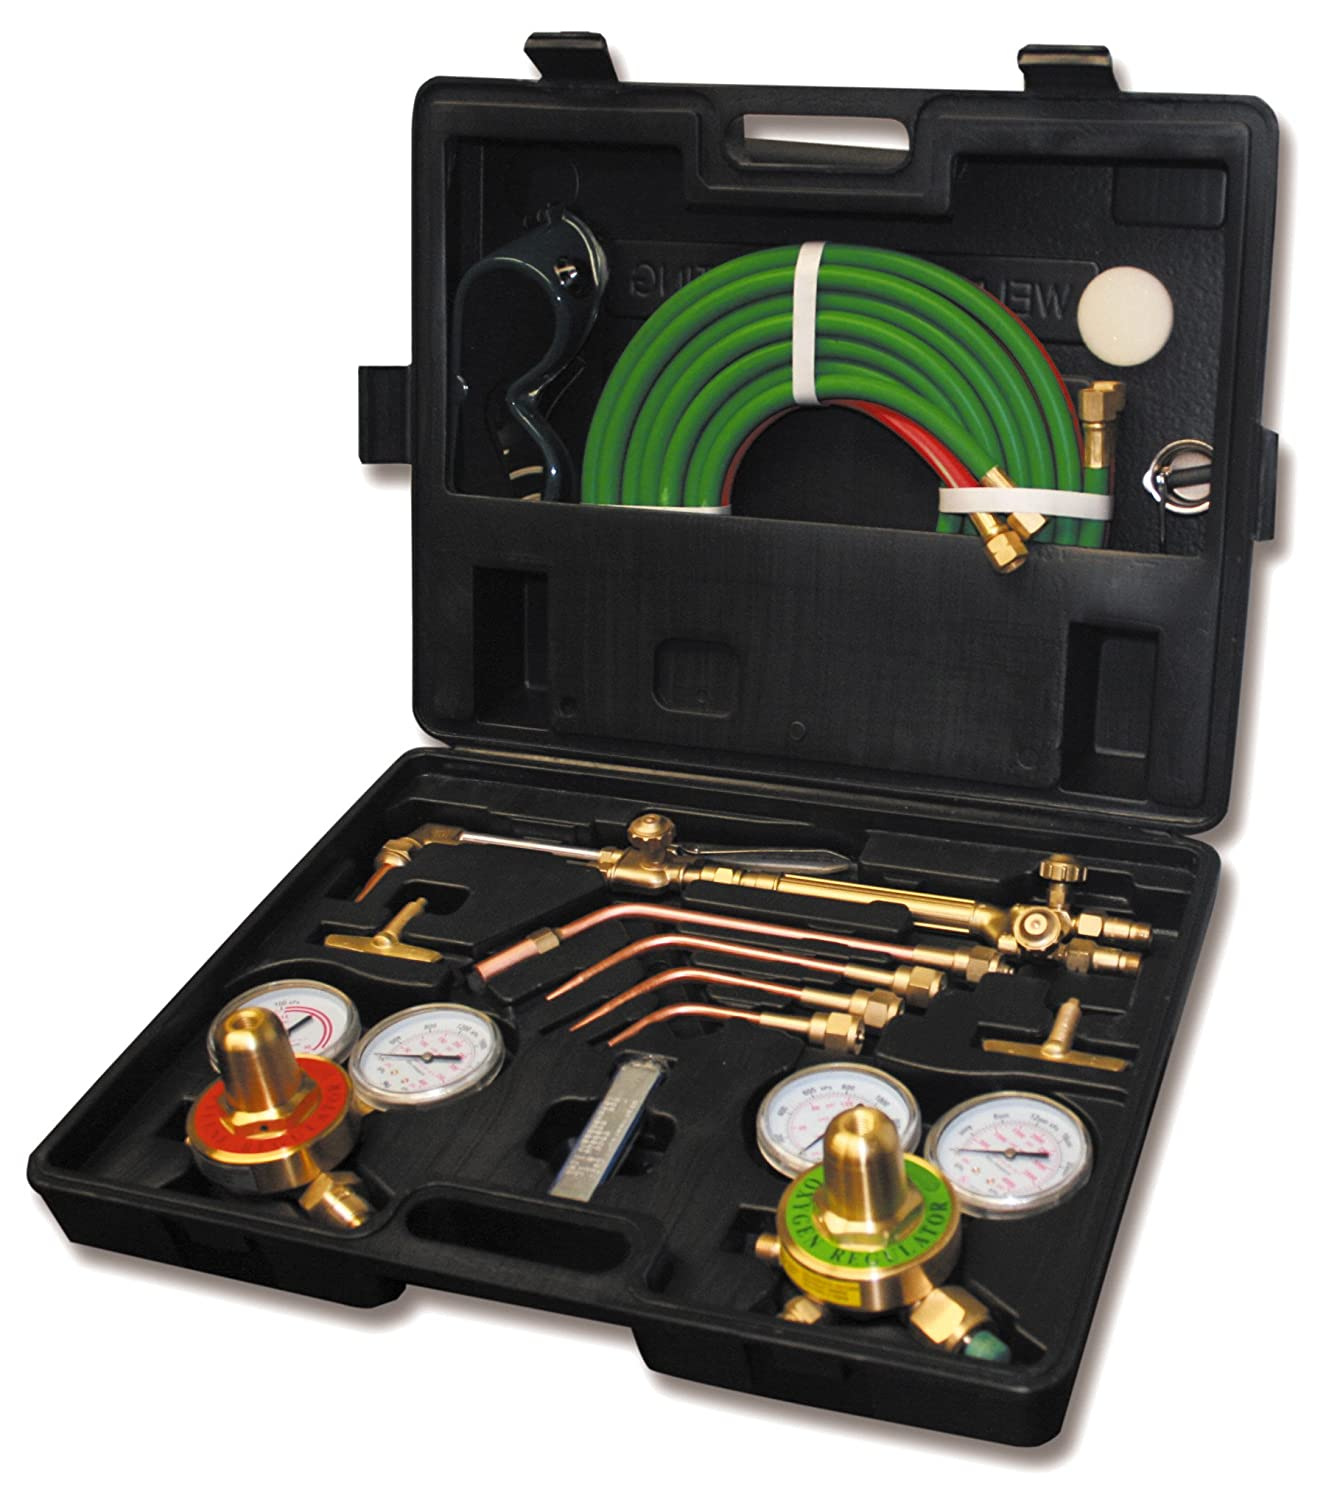 Us Forge Welding And Cutting Oxygen Acetylene Pro Flame Pak Kit Diagram 00820 Power Welders